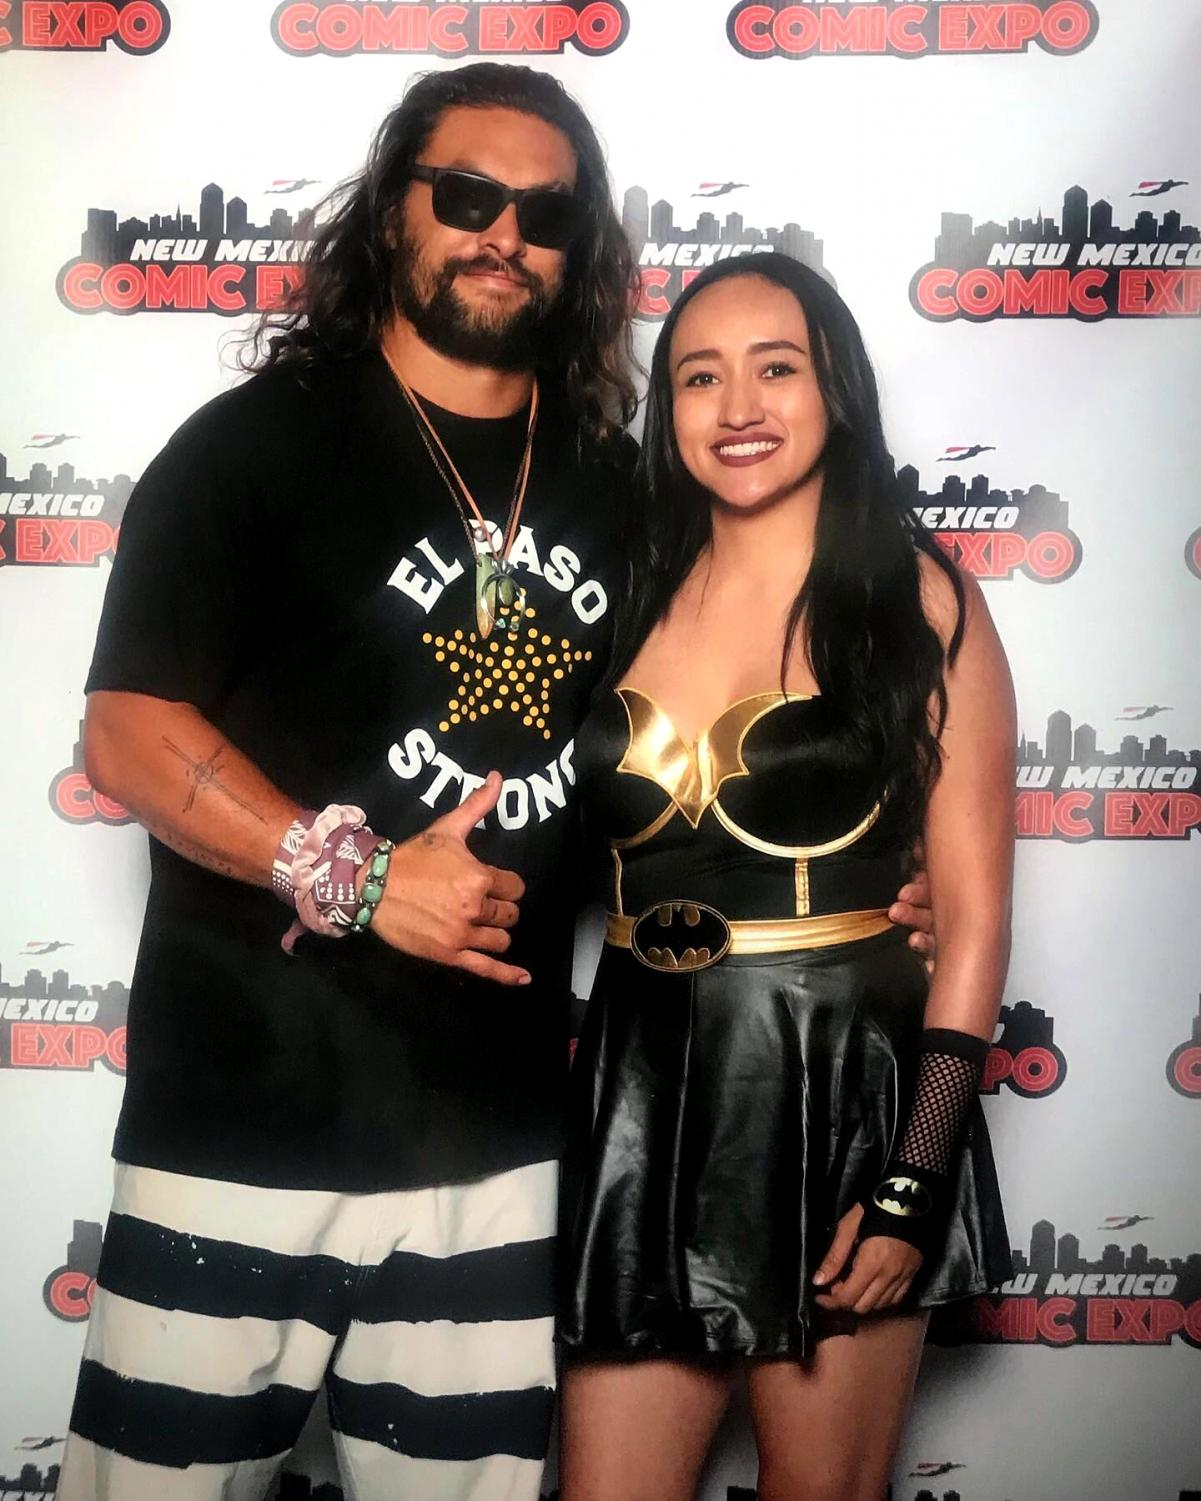 Jason Momoa takes a photo with fan while wearing an El Paso Strong shirt.